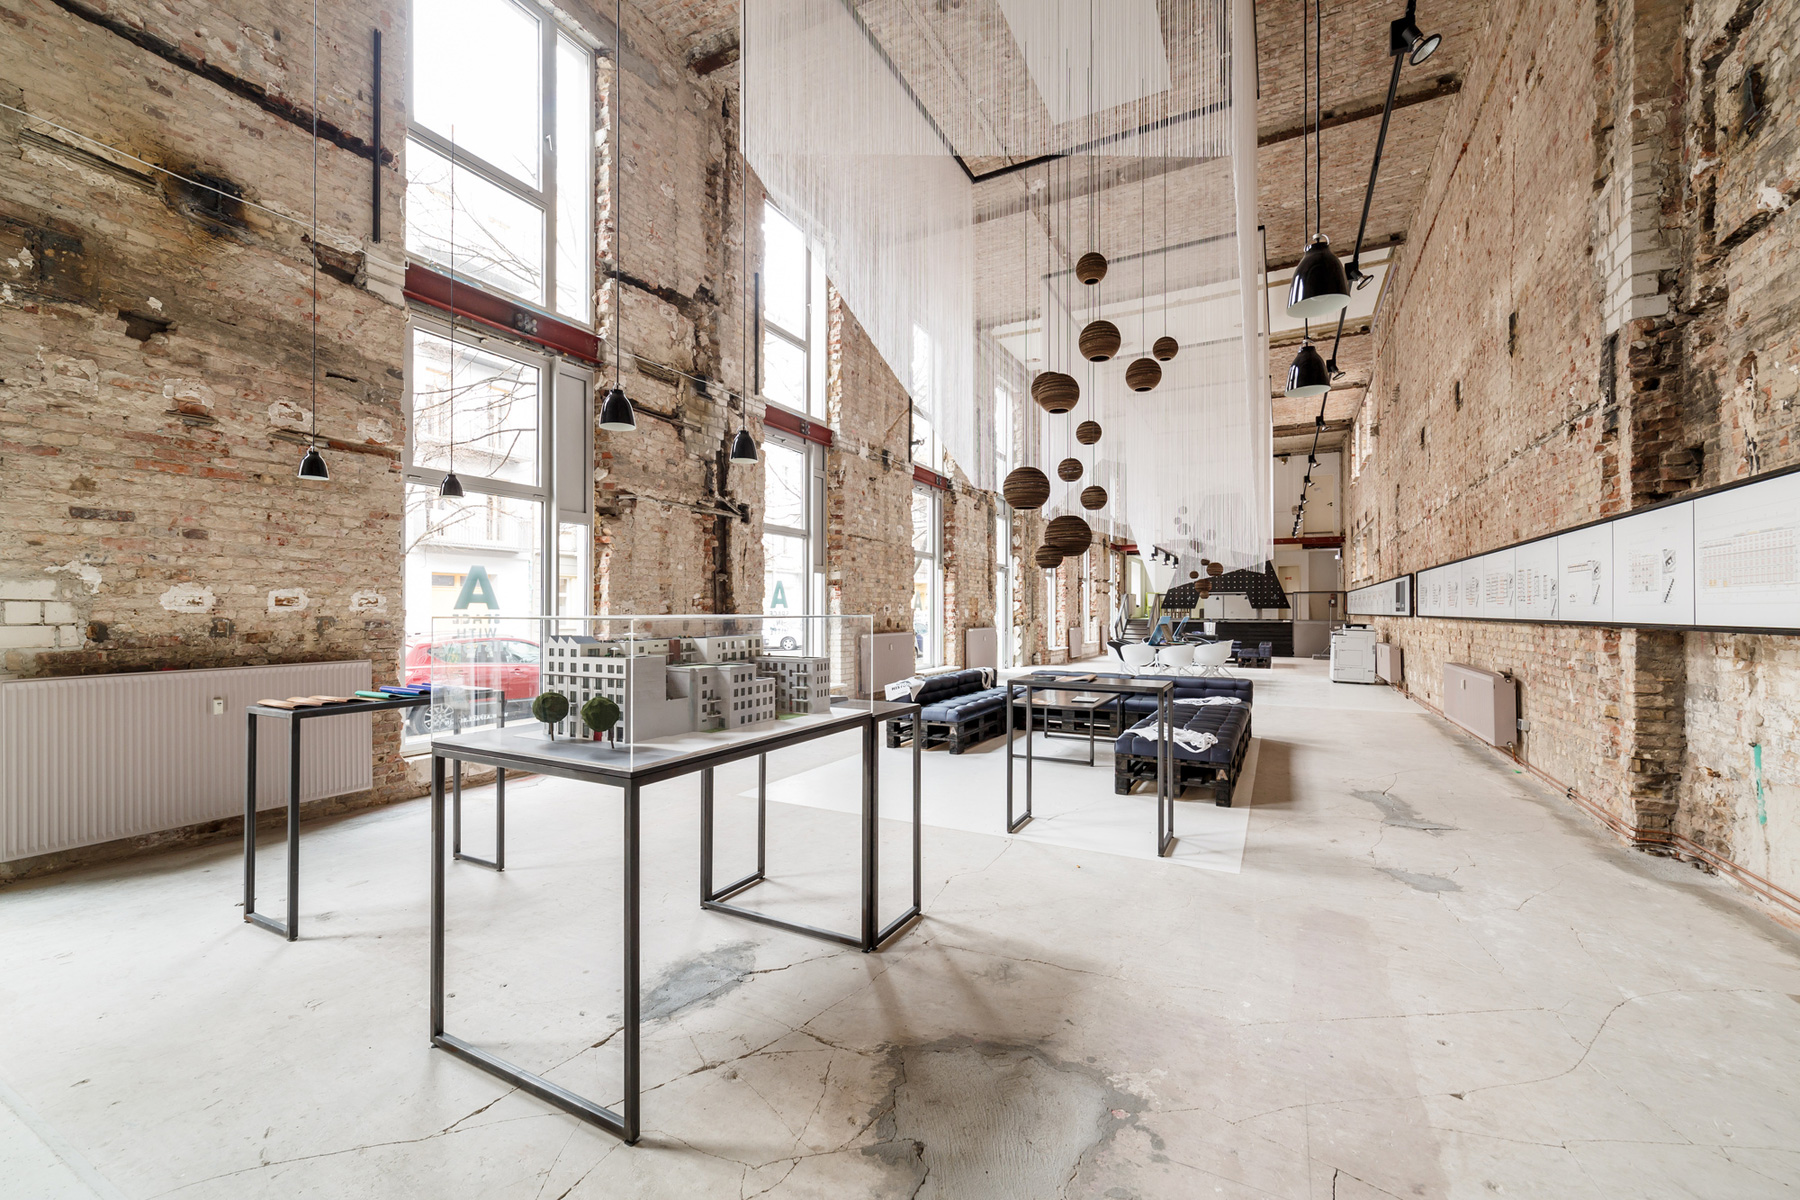 Space - Temporary Show / Plajer & Franz Studio (16)